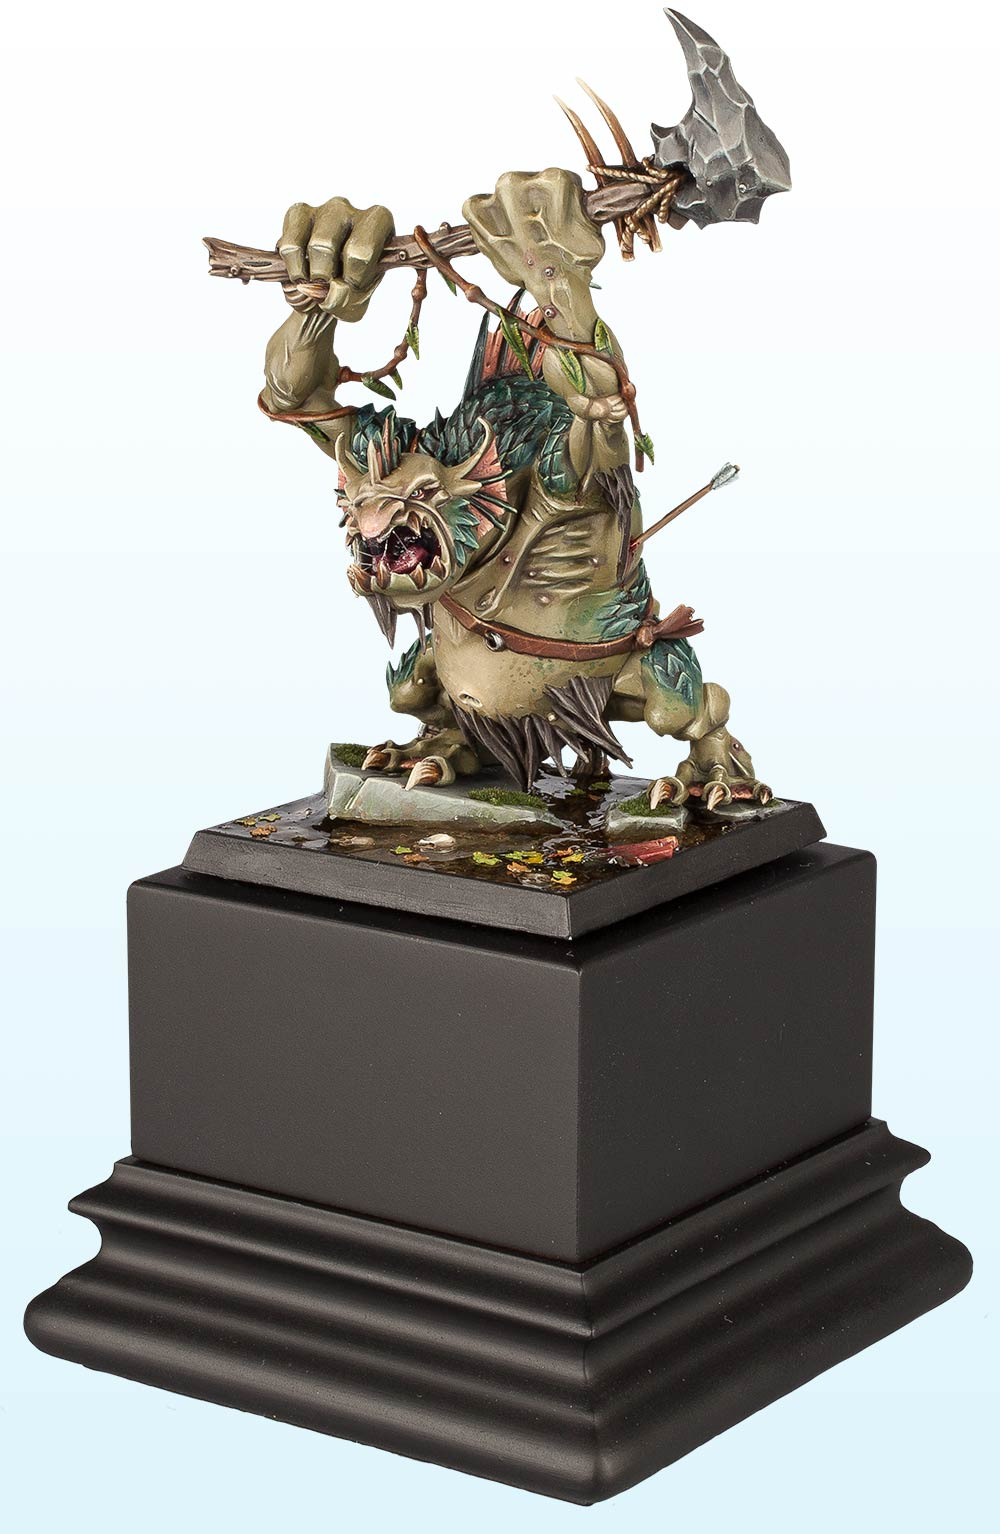 Warhammer Large Model: Bronze – 2014